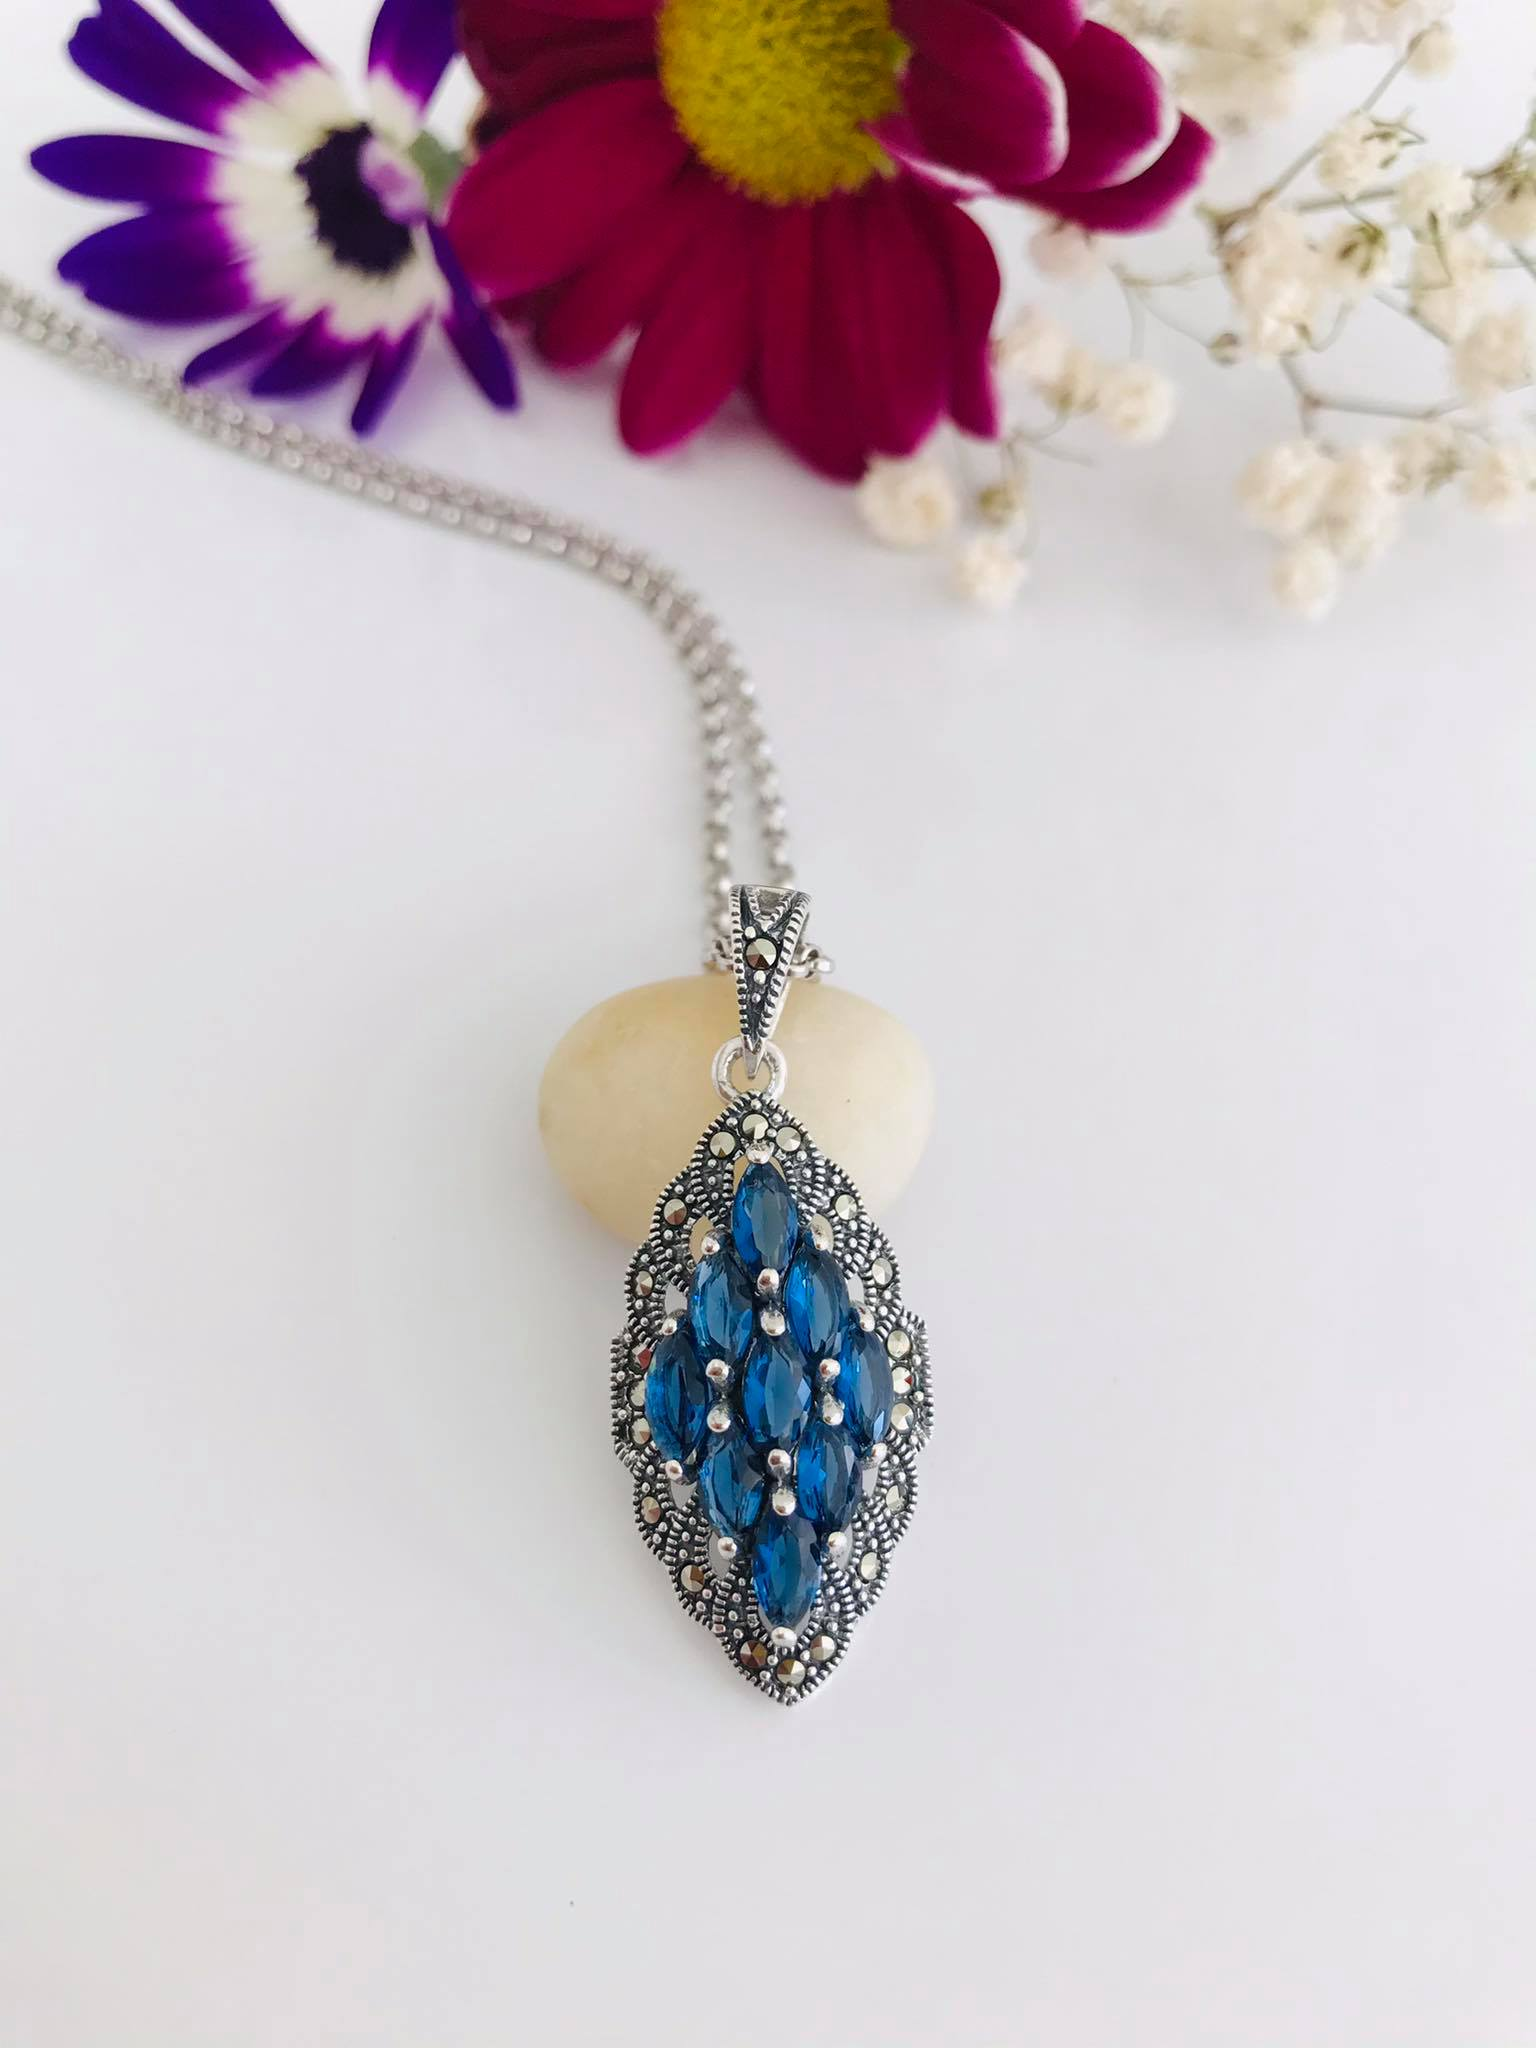 Pave Set Silver Pendant with 9 beautiful Sapphire and Sparkling Marcasite Necklace Image